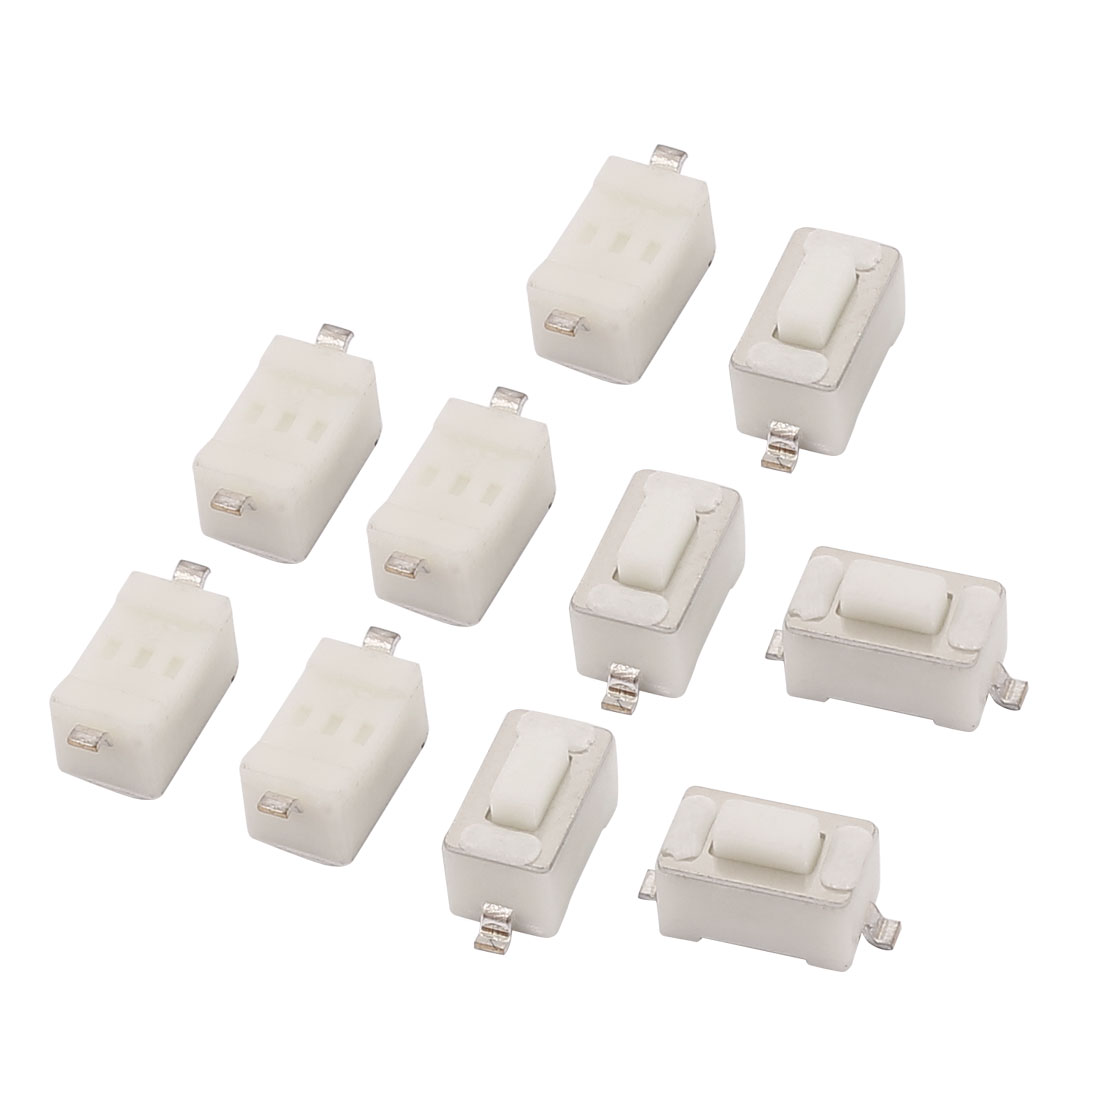 10 Pcs Momentary Tact Tactile Push Button Switch SMD SMT 2 Pin 3mm x 6mm x 4.3mm